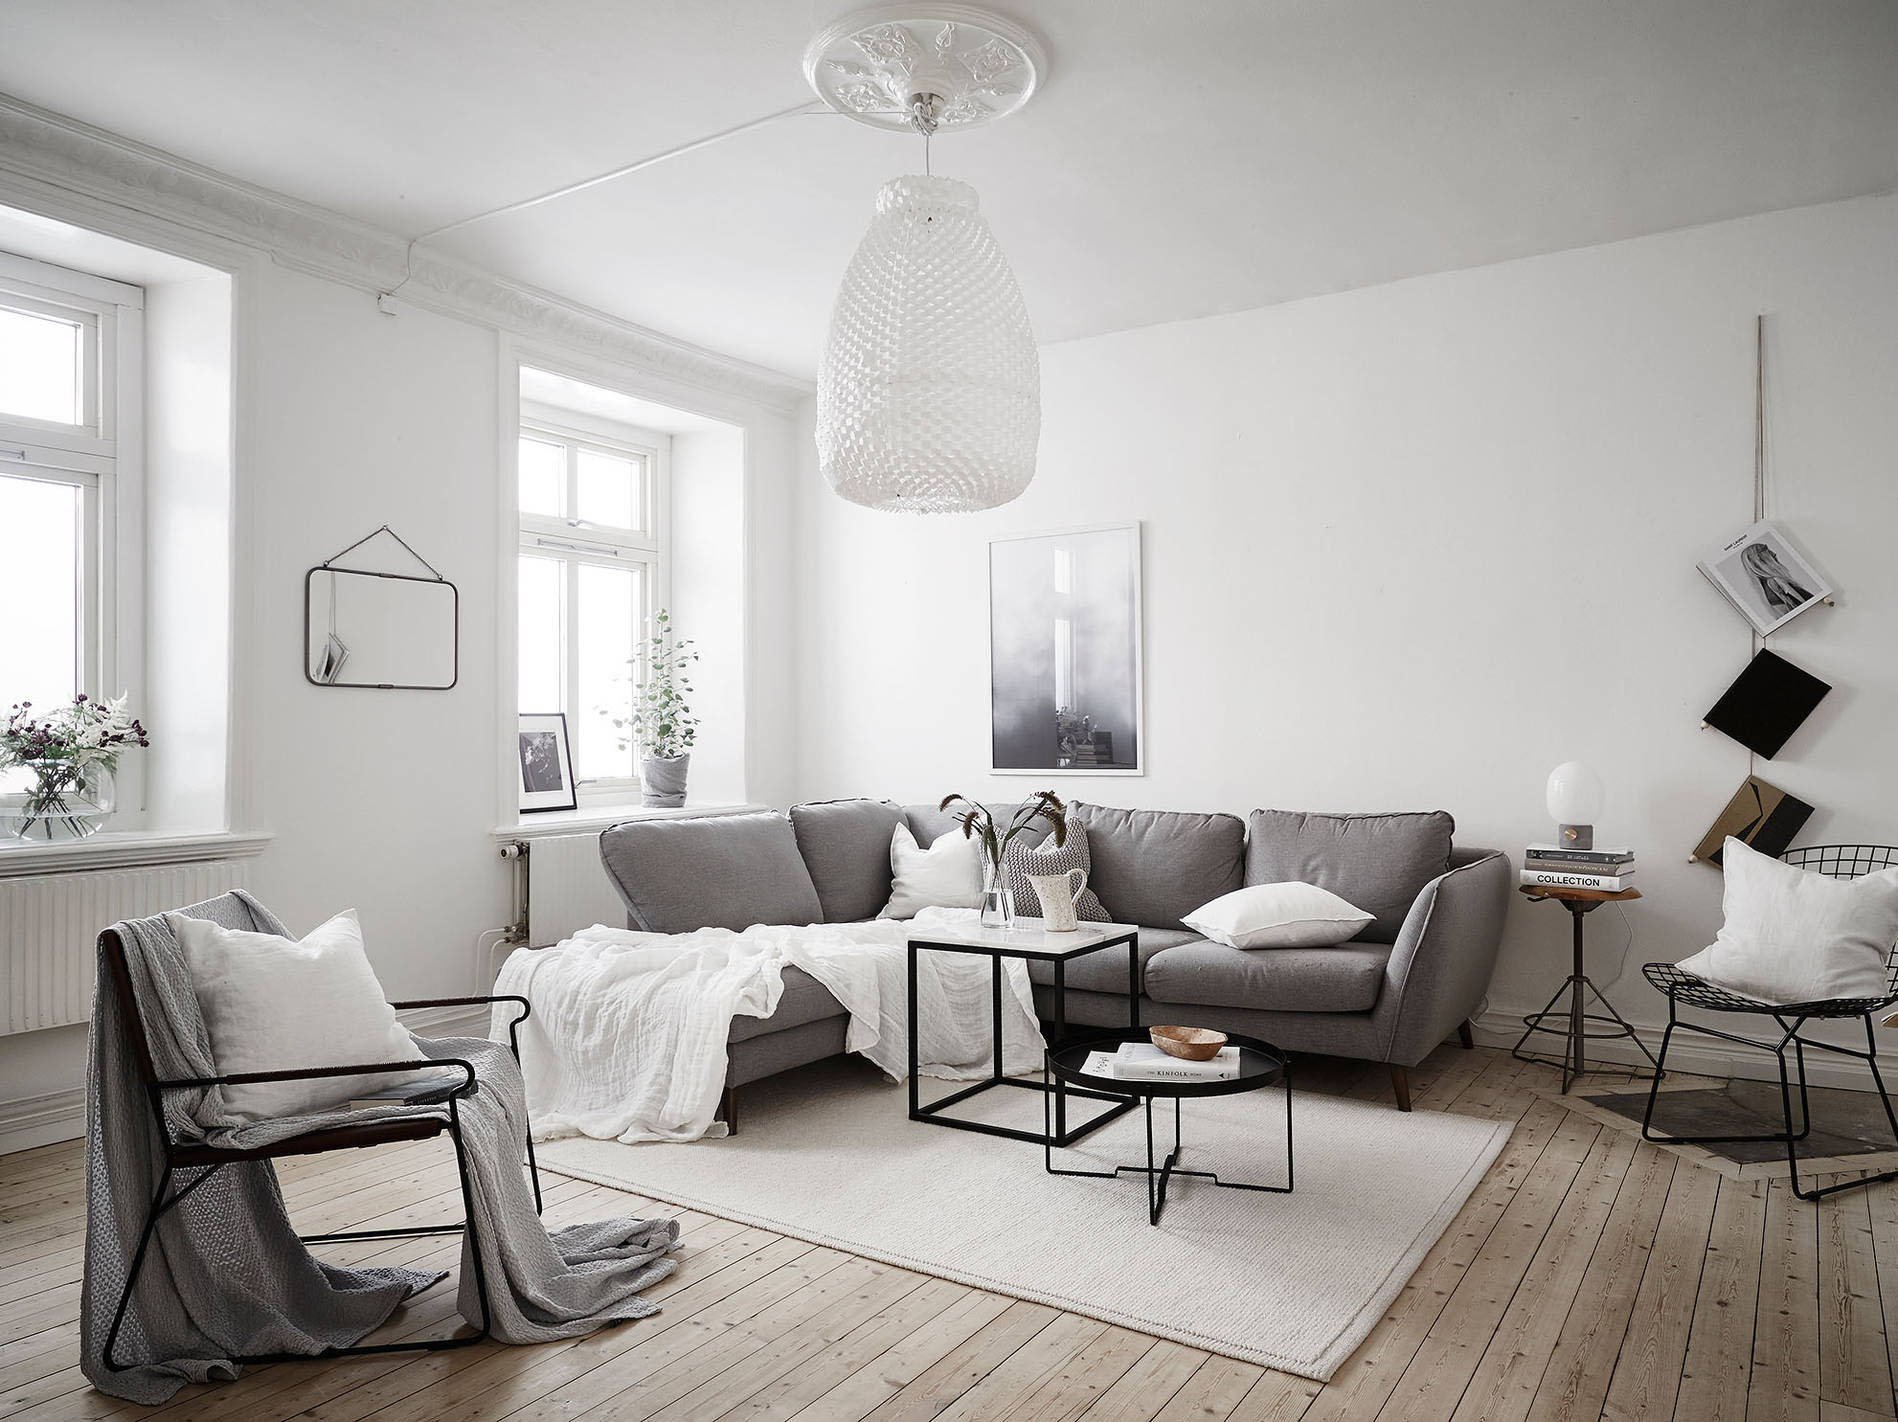 scandinavian living room design what color should i paint my with dark brown furniture inspiration happy grey lucky neutral tones black accents